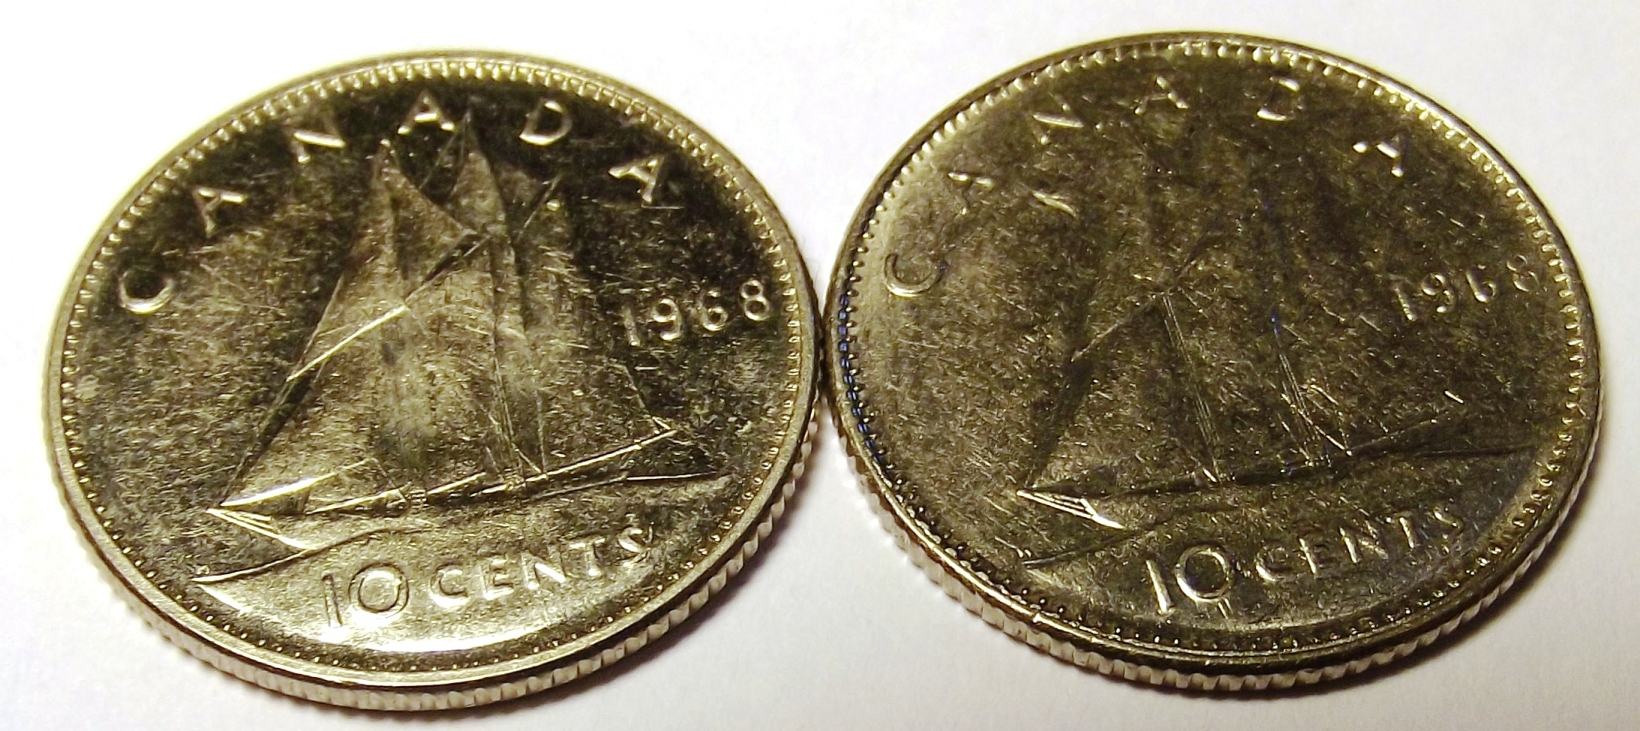 1986 CANADA 10 CENTS PROOF-LIKE COIN